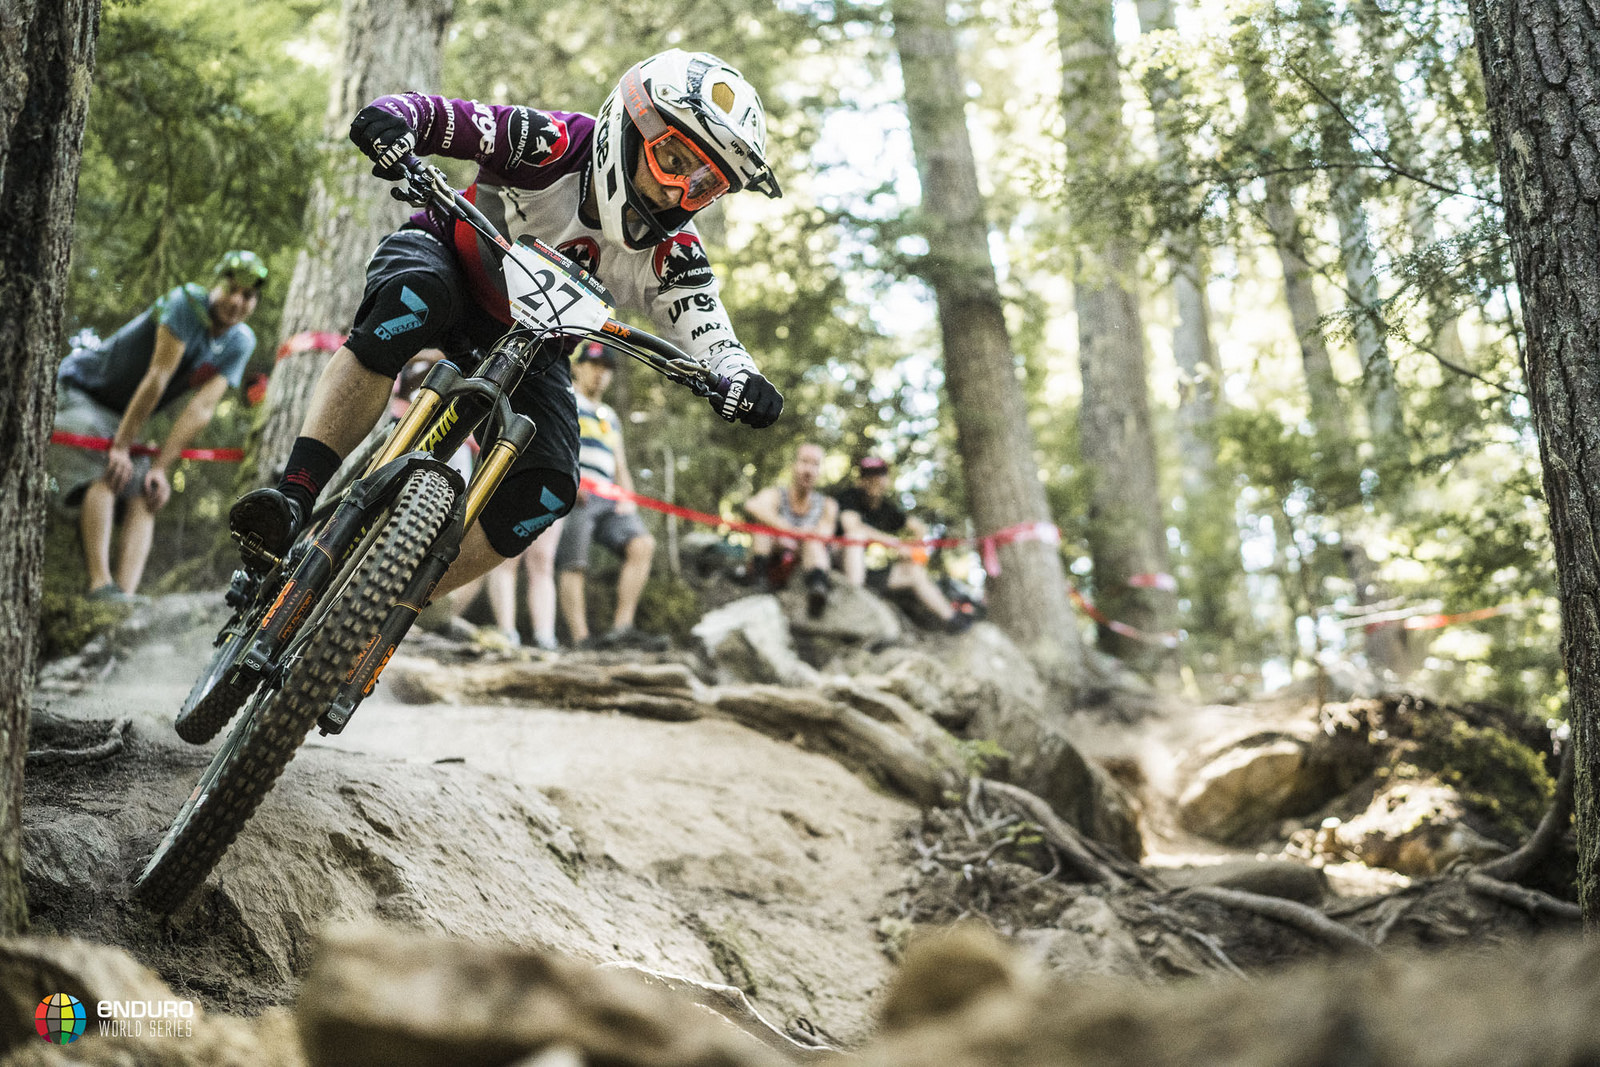 Local rider Jesse Melamed smashed stage 2 and nearly won the event. Photo courtesy Enduro World Series